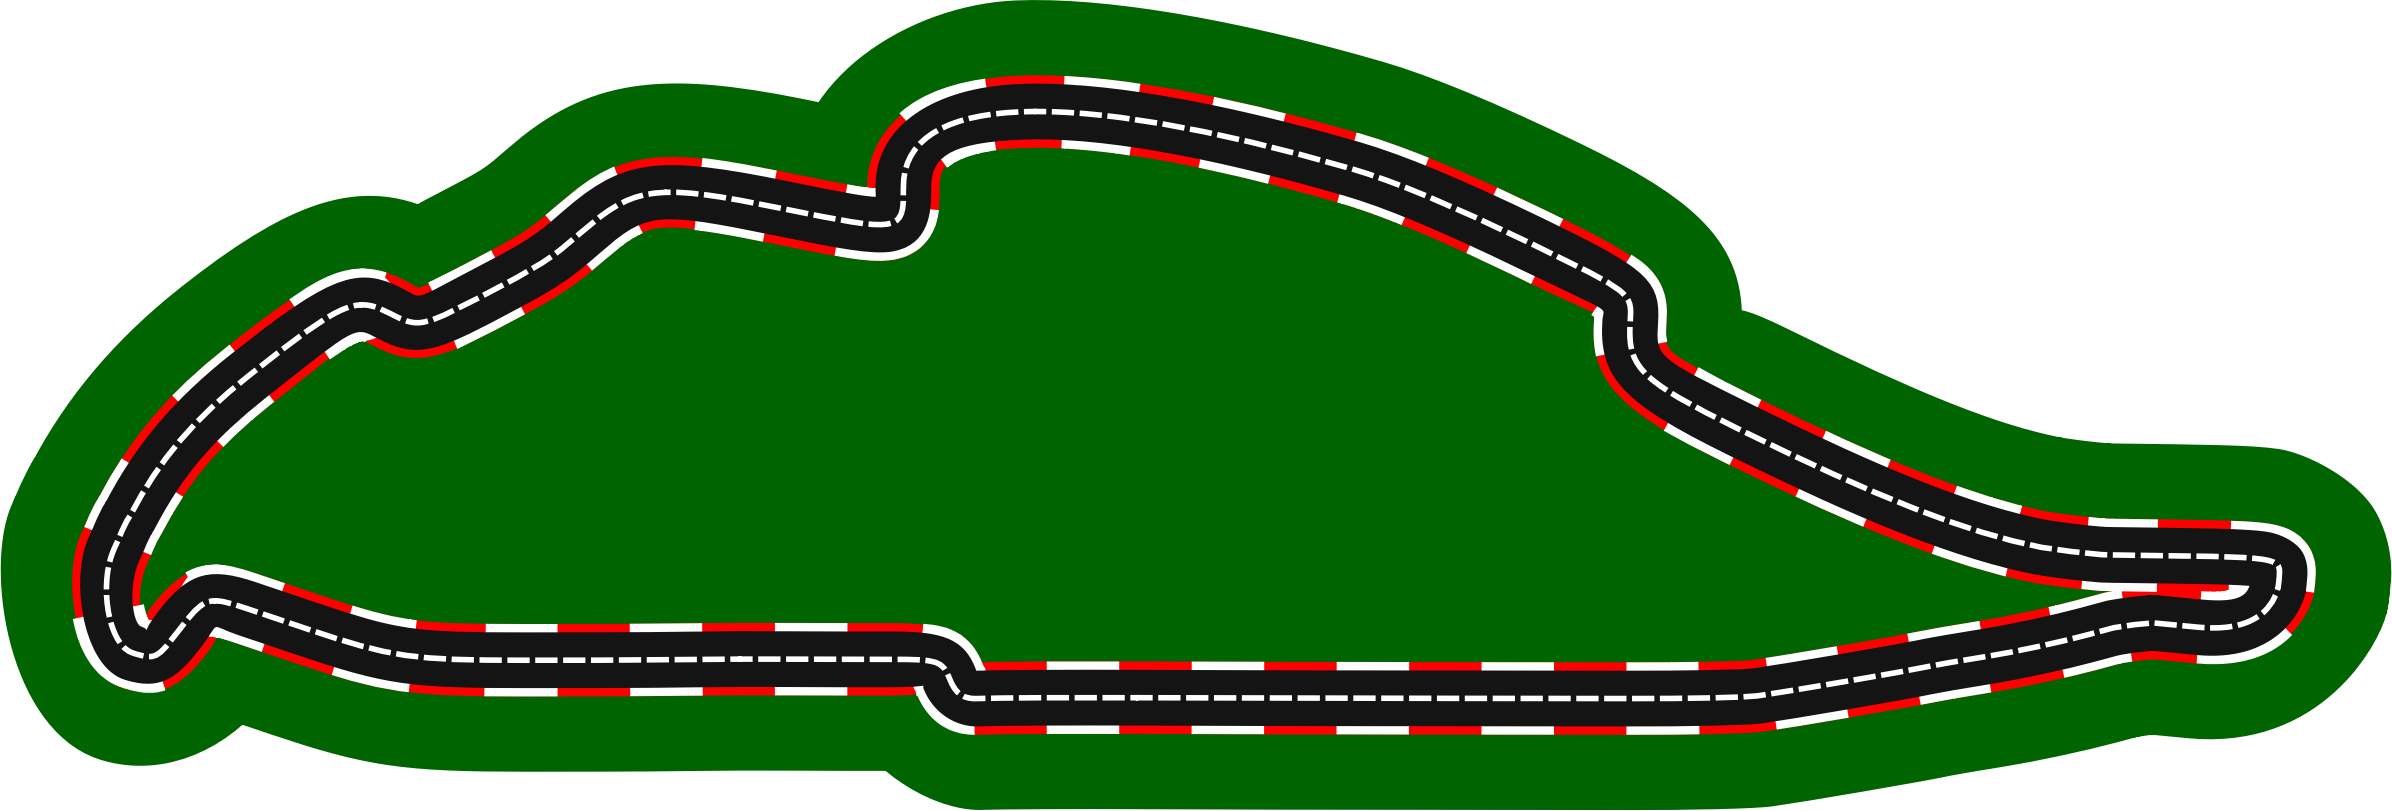 Car race track clipart jpg royalty free library Clipart - F1 circuits 2014-2018 - Circuit Gilles Villeneuve (version 2) jpg royalty free library